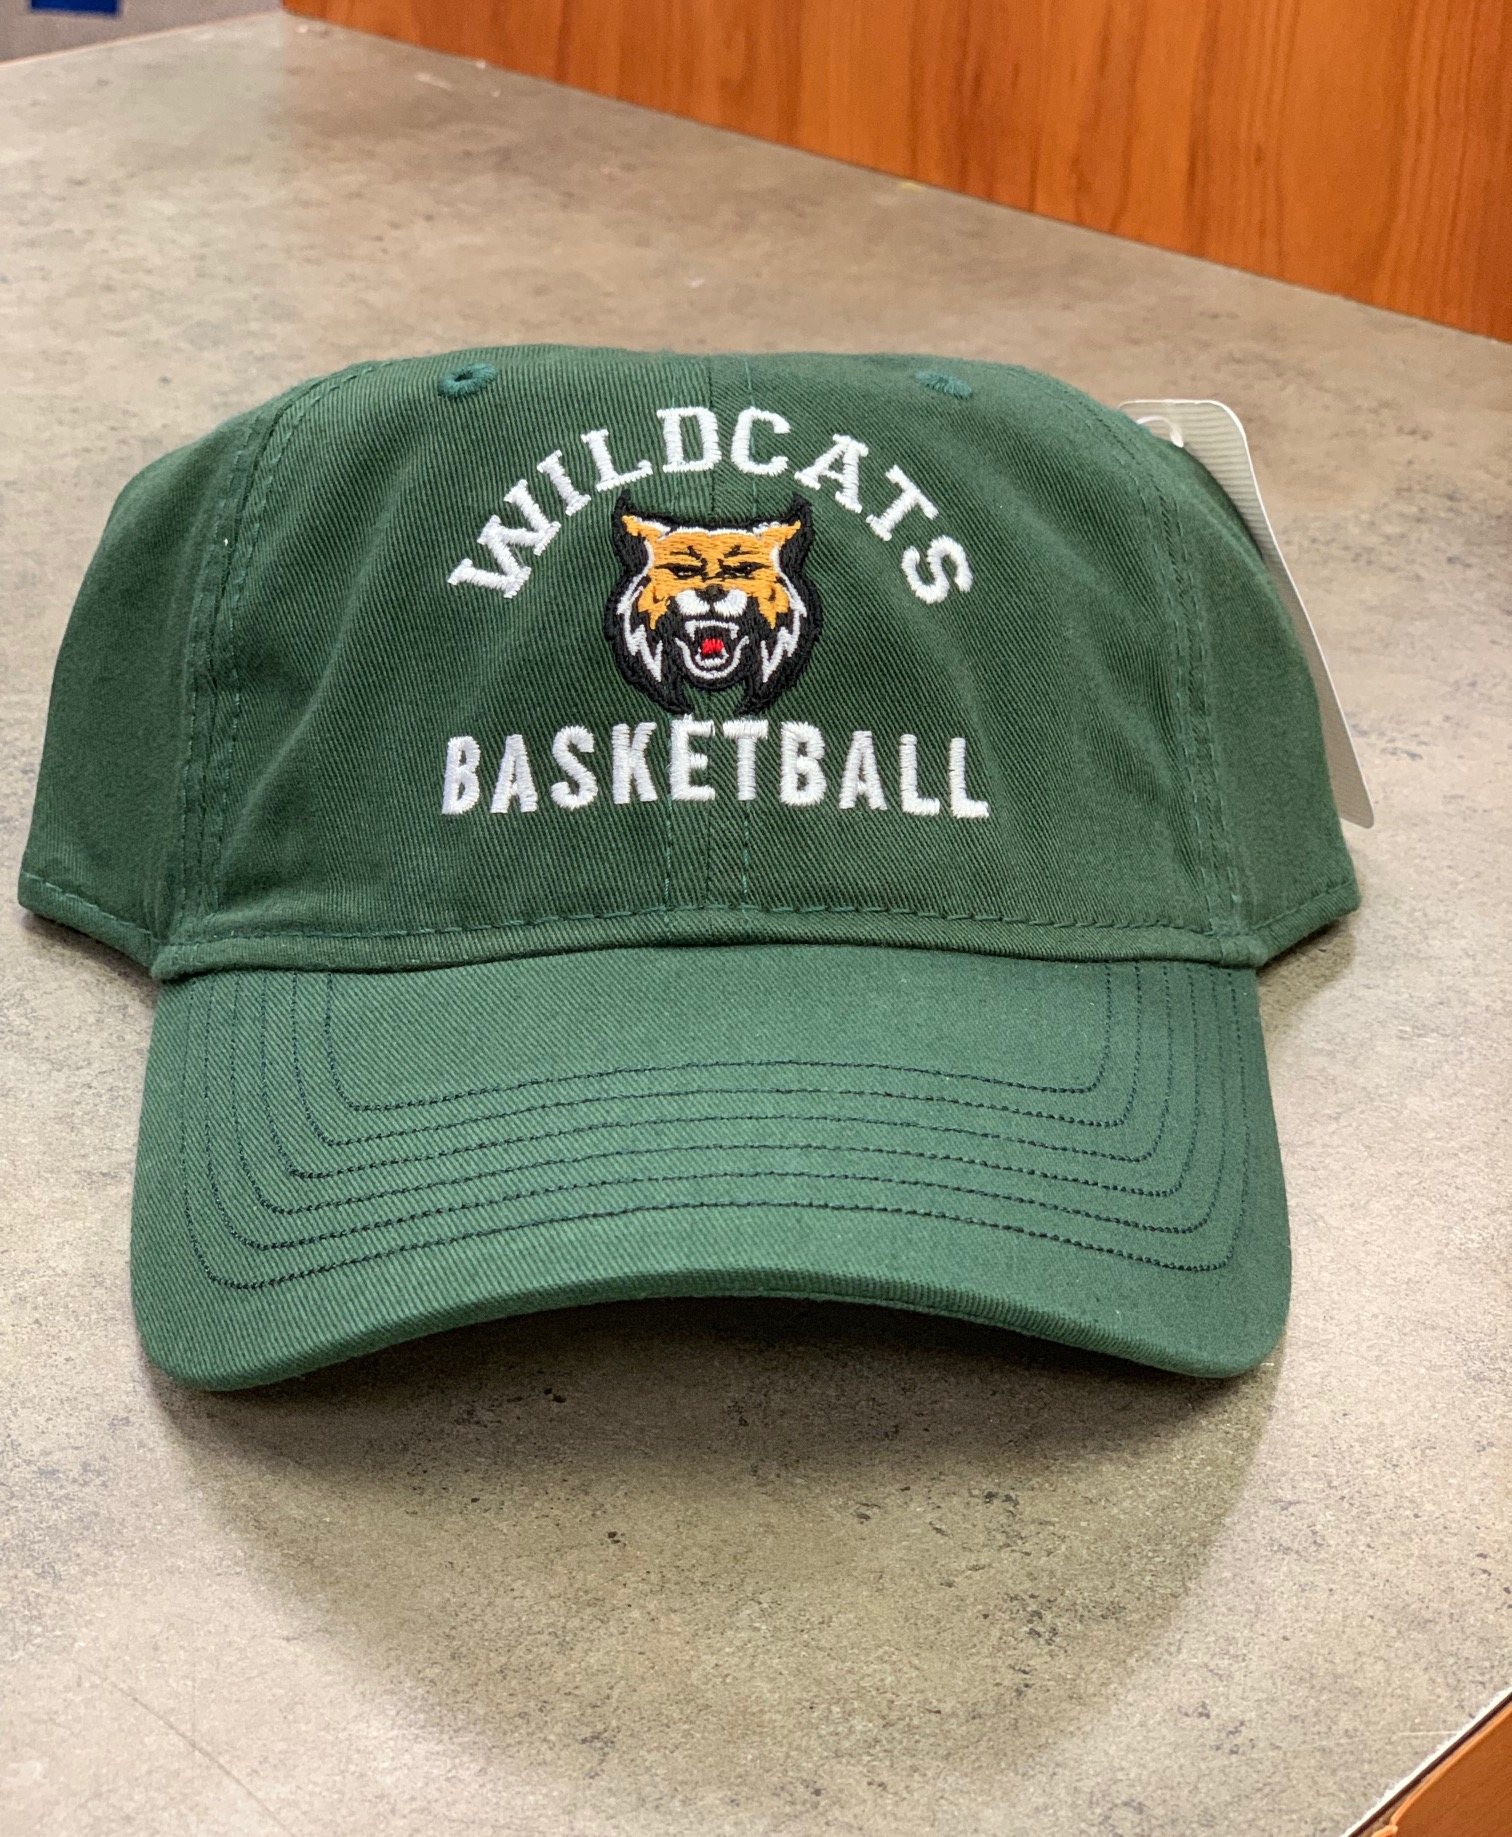 Wildcats Basketball Cap